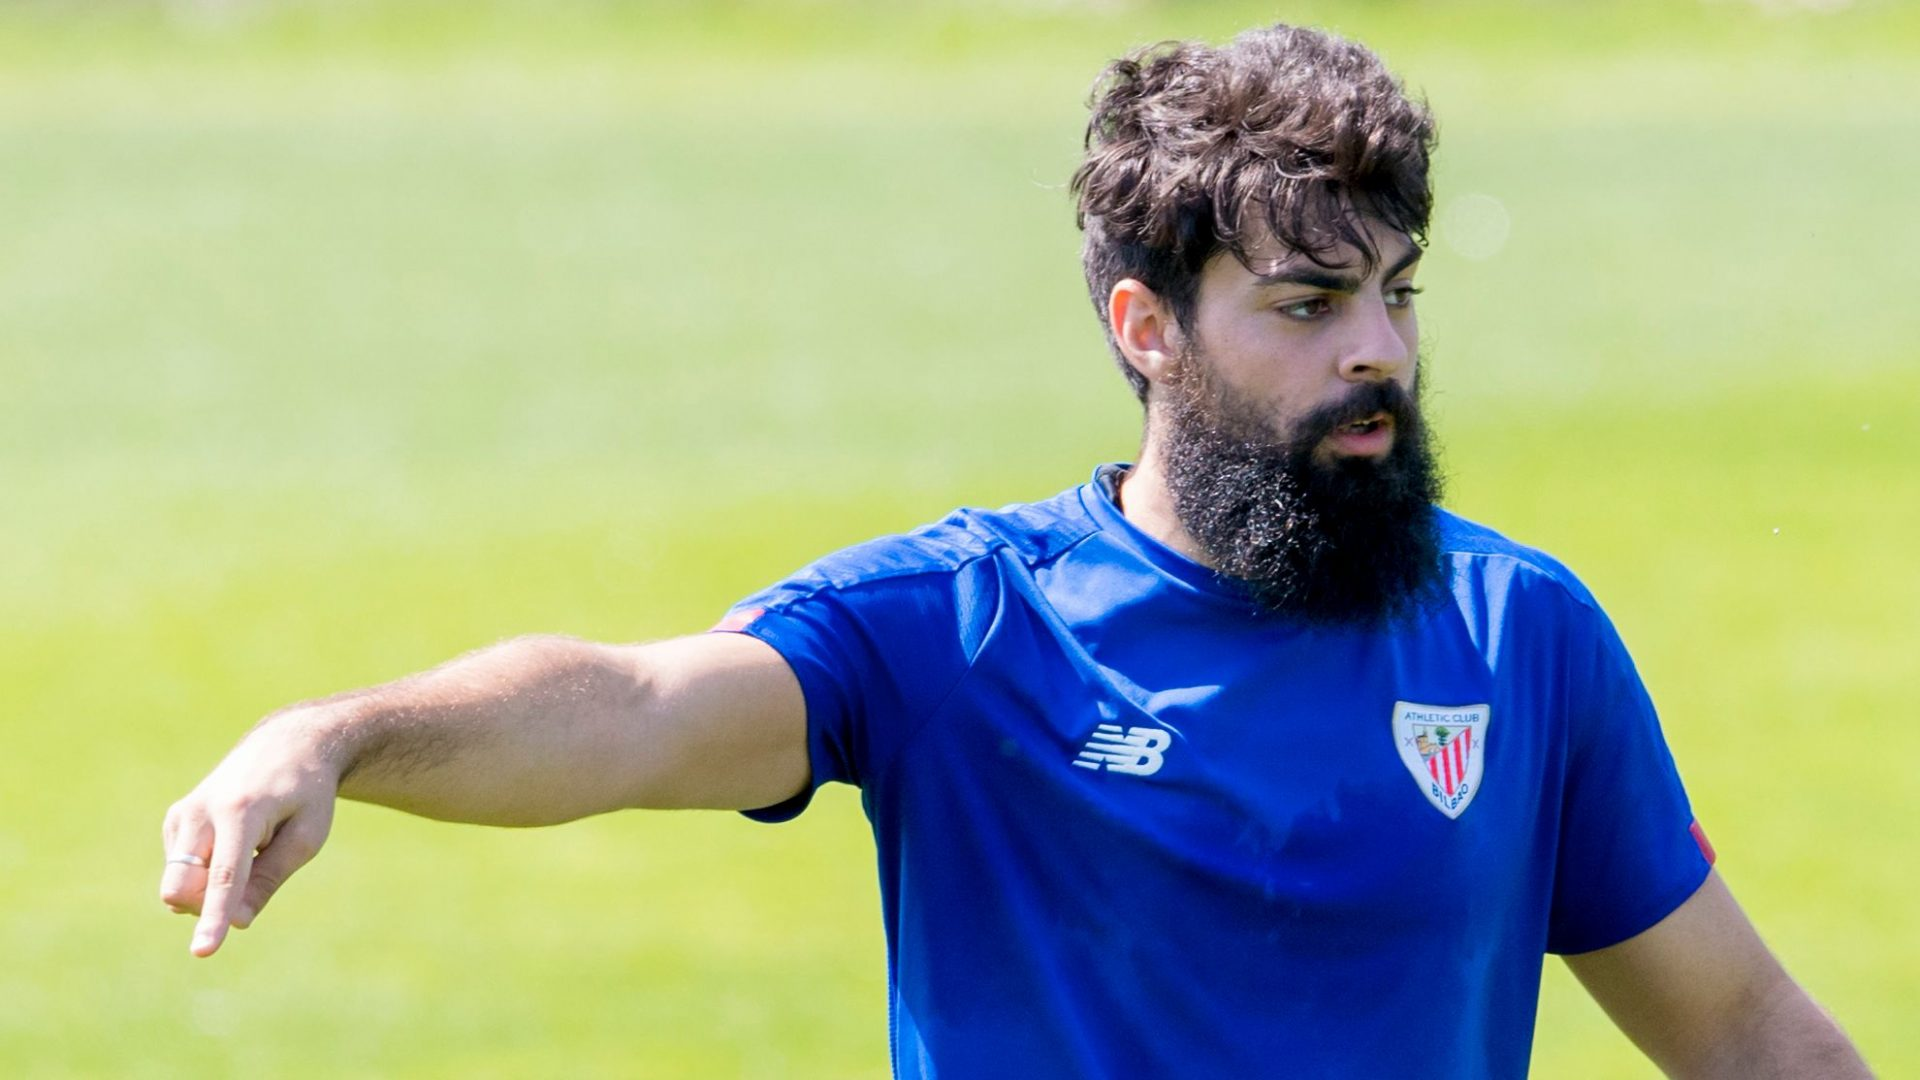 Athletic Club I Training session (05/26/2020)